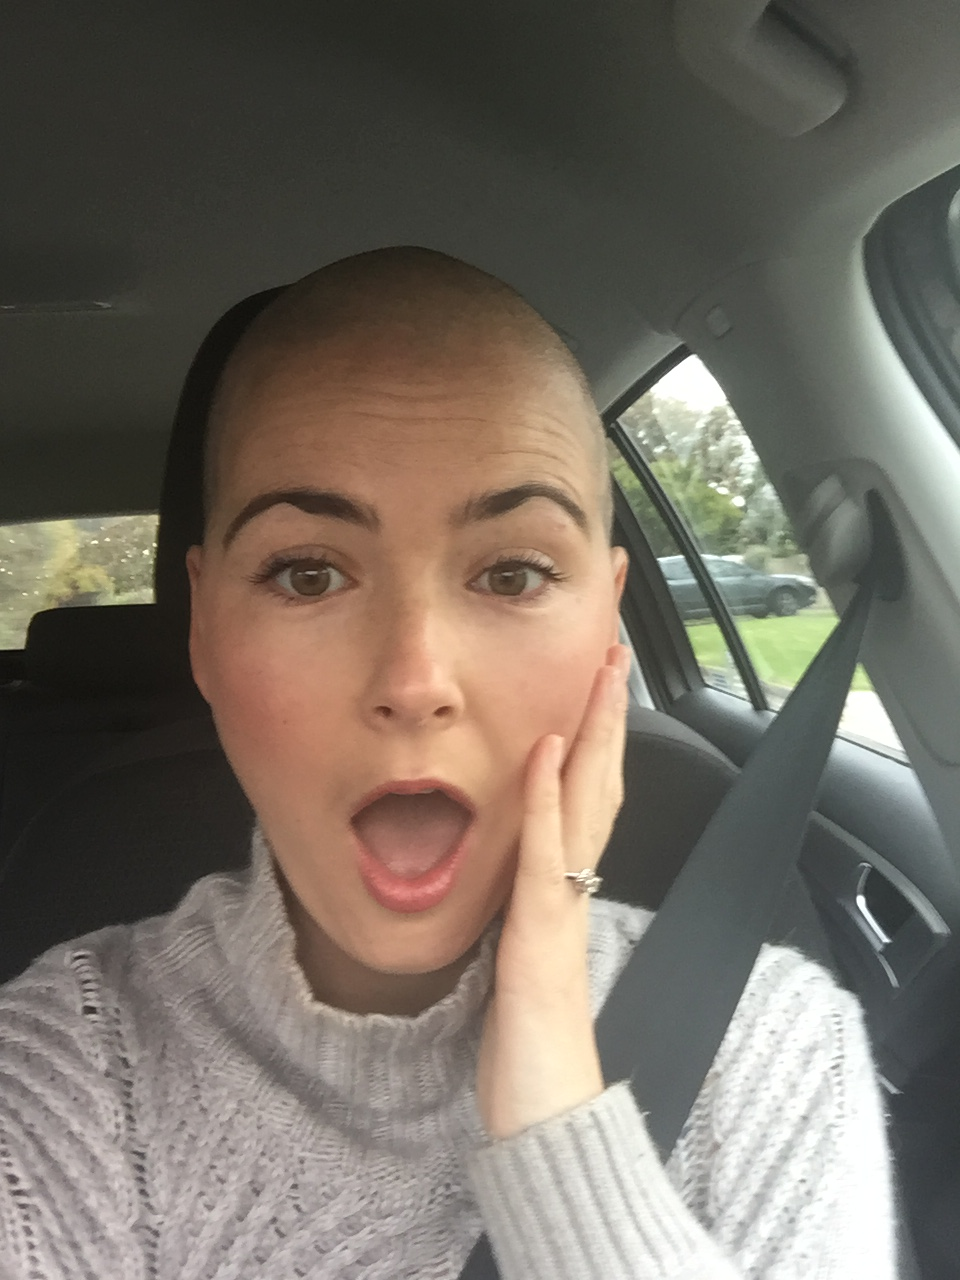 Mourning and managing the loss of my hair with open eyes day 1 of shaved hair and feeling shocked buycottarizona Image collections